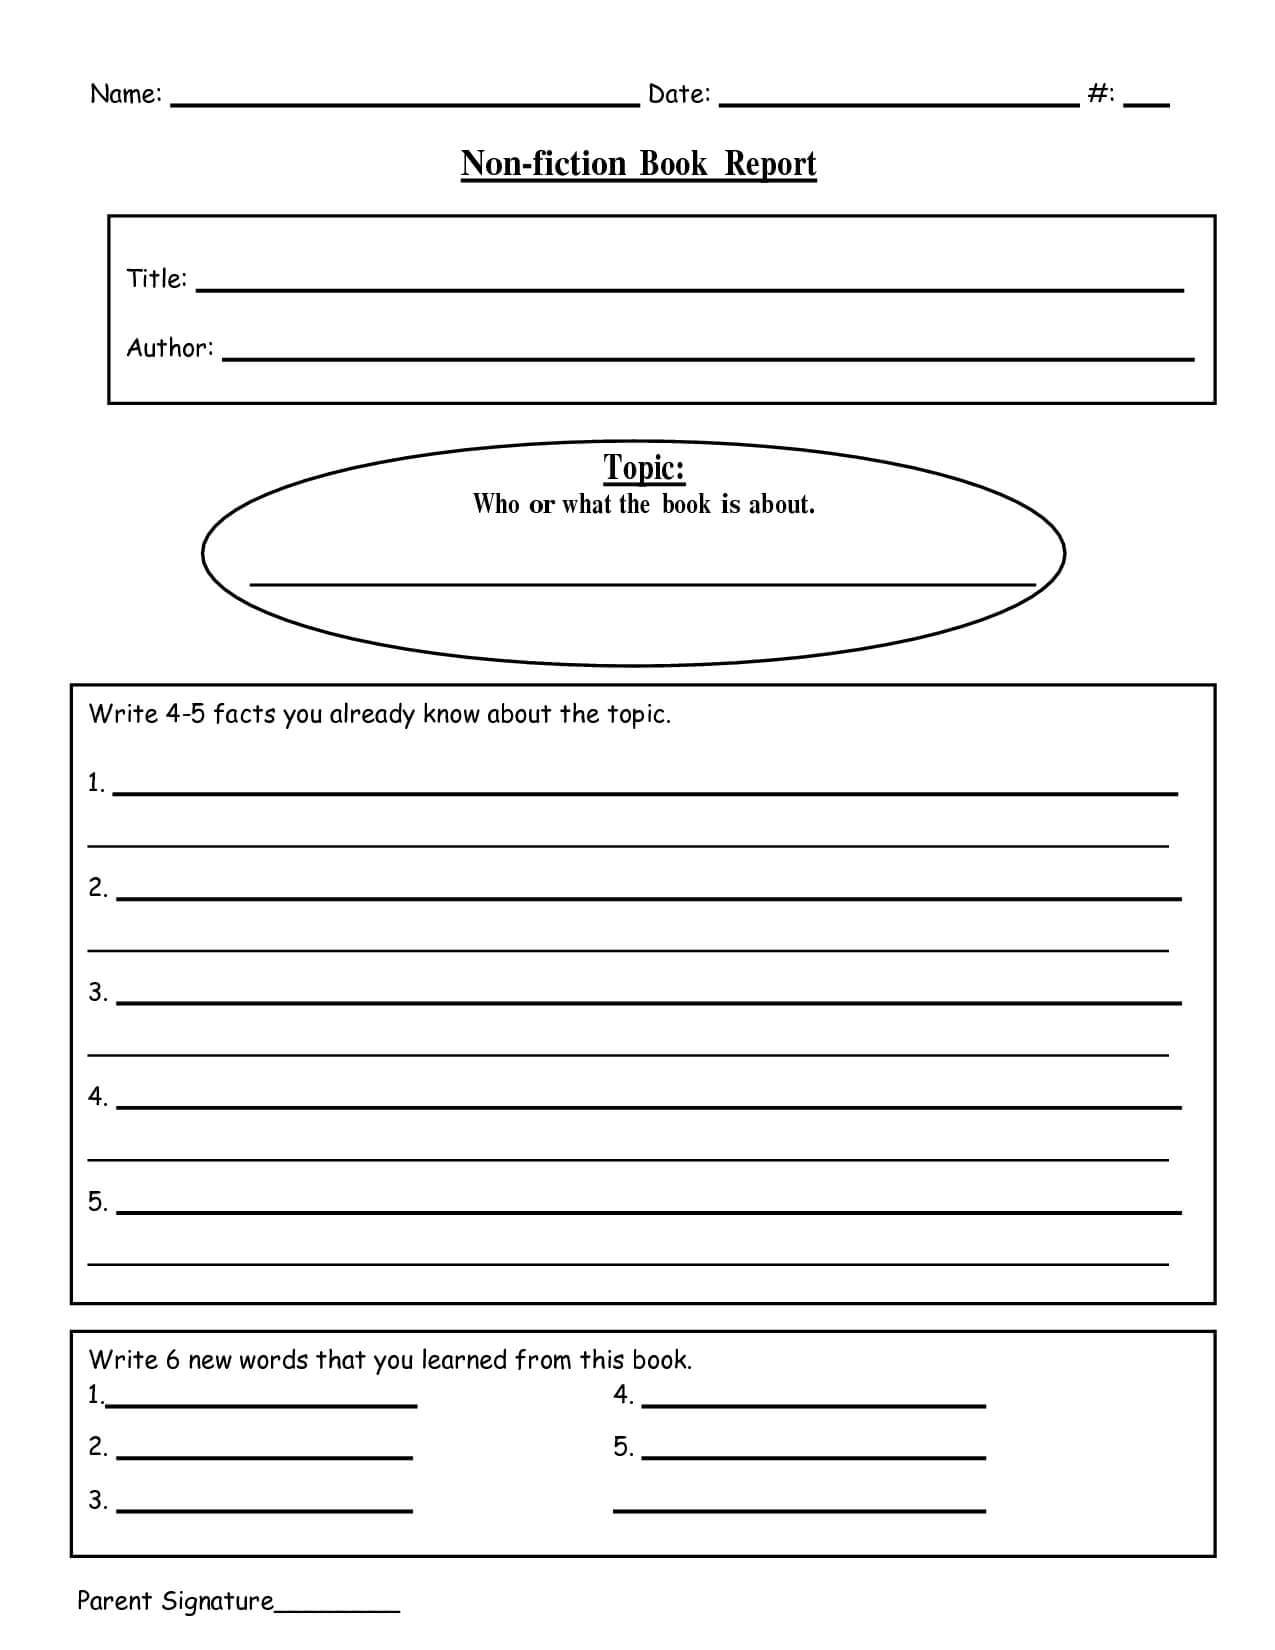 Free Research Paper Grader 1St Grade Writing | Ceolpub Pertaining To 1St Grade Book Report Template